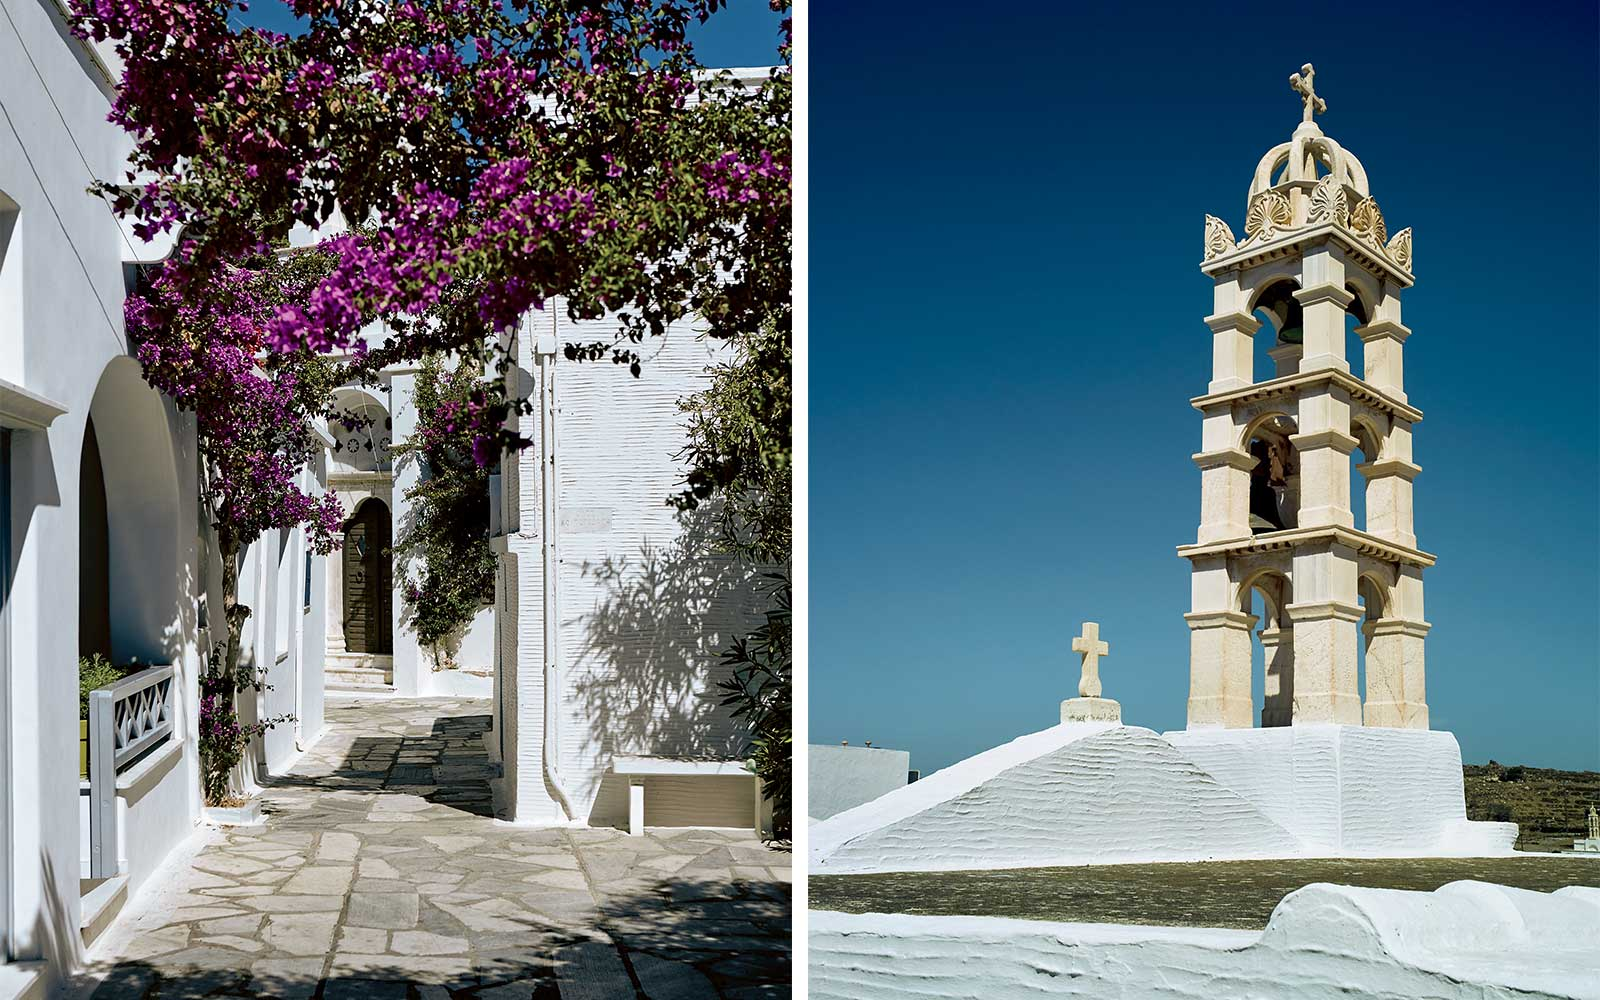 Tinos Island Churches and Marble in Greece